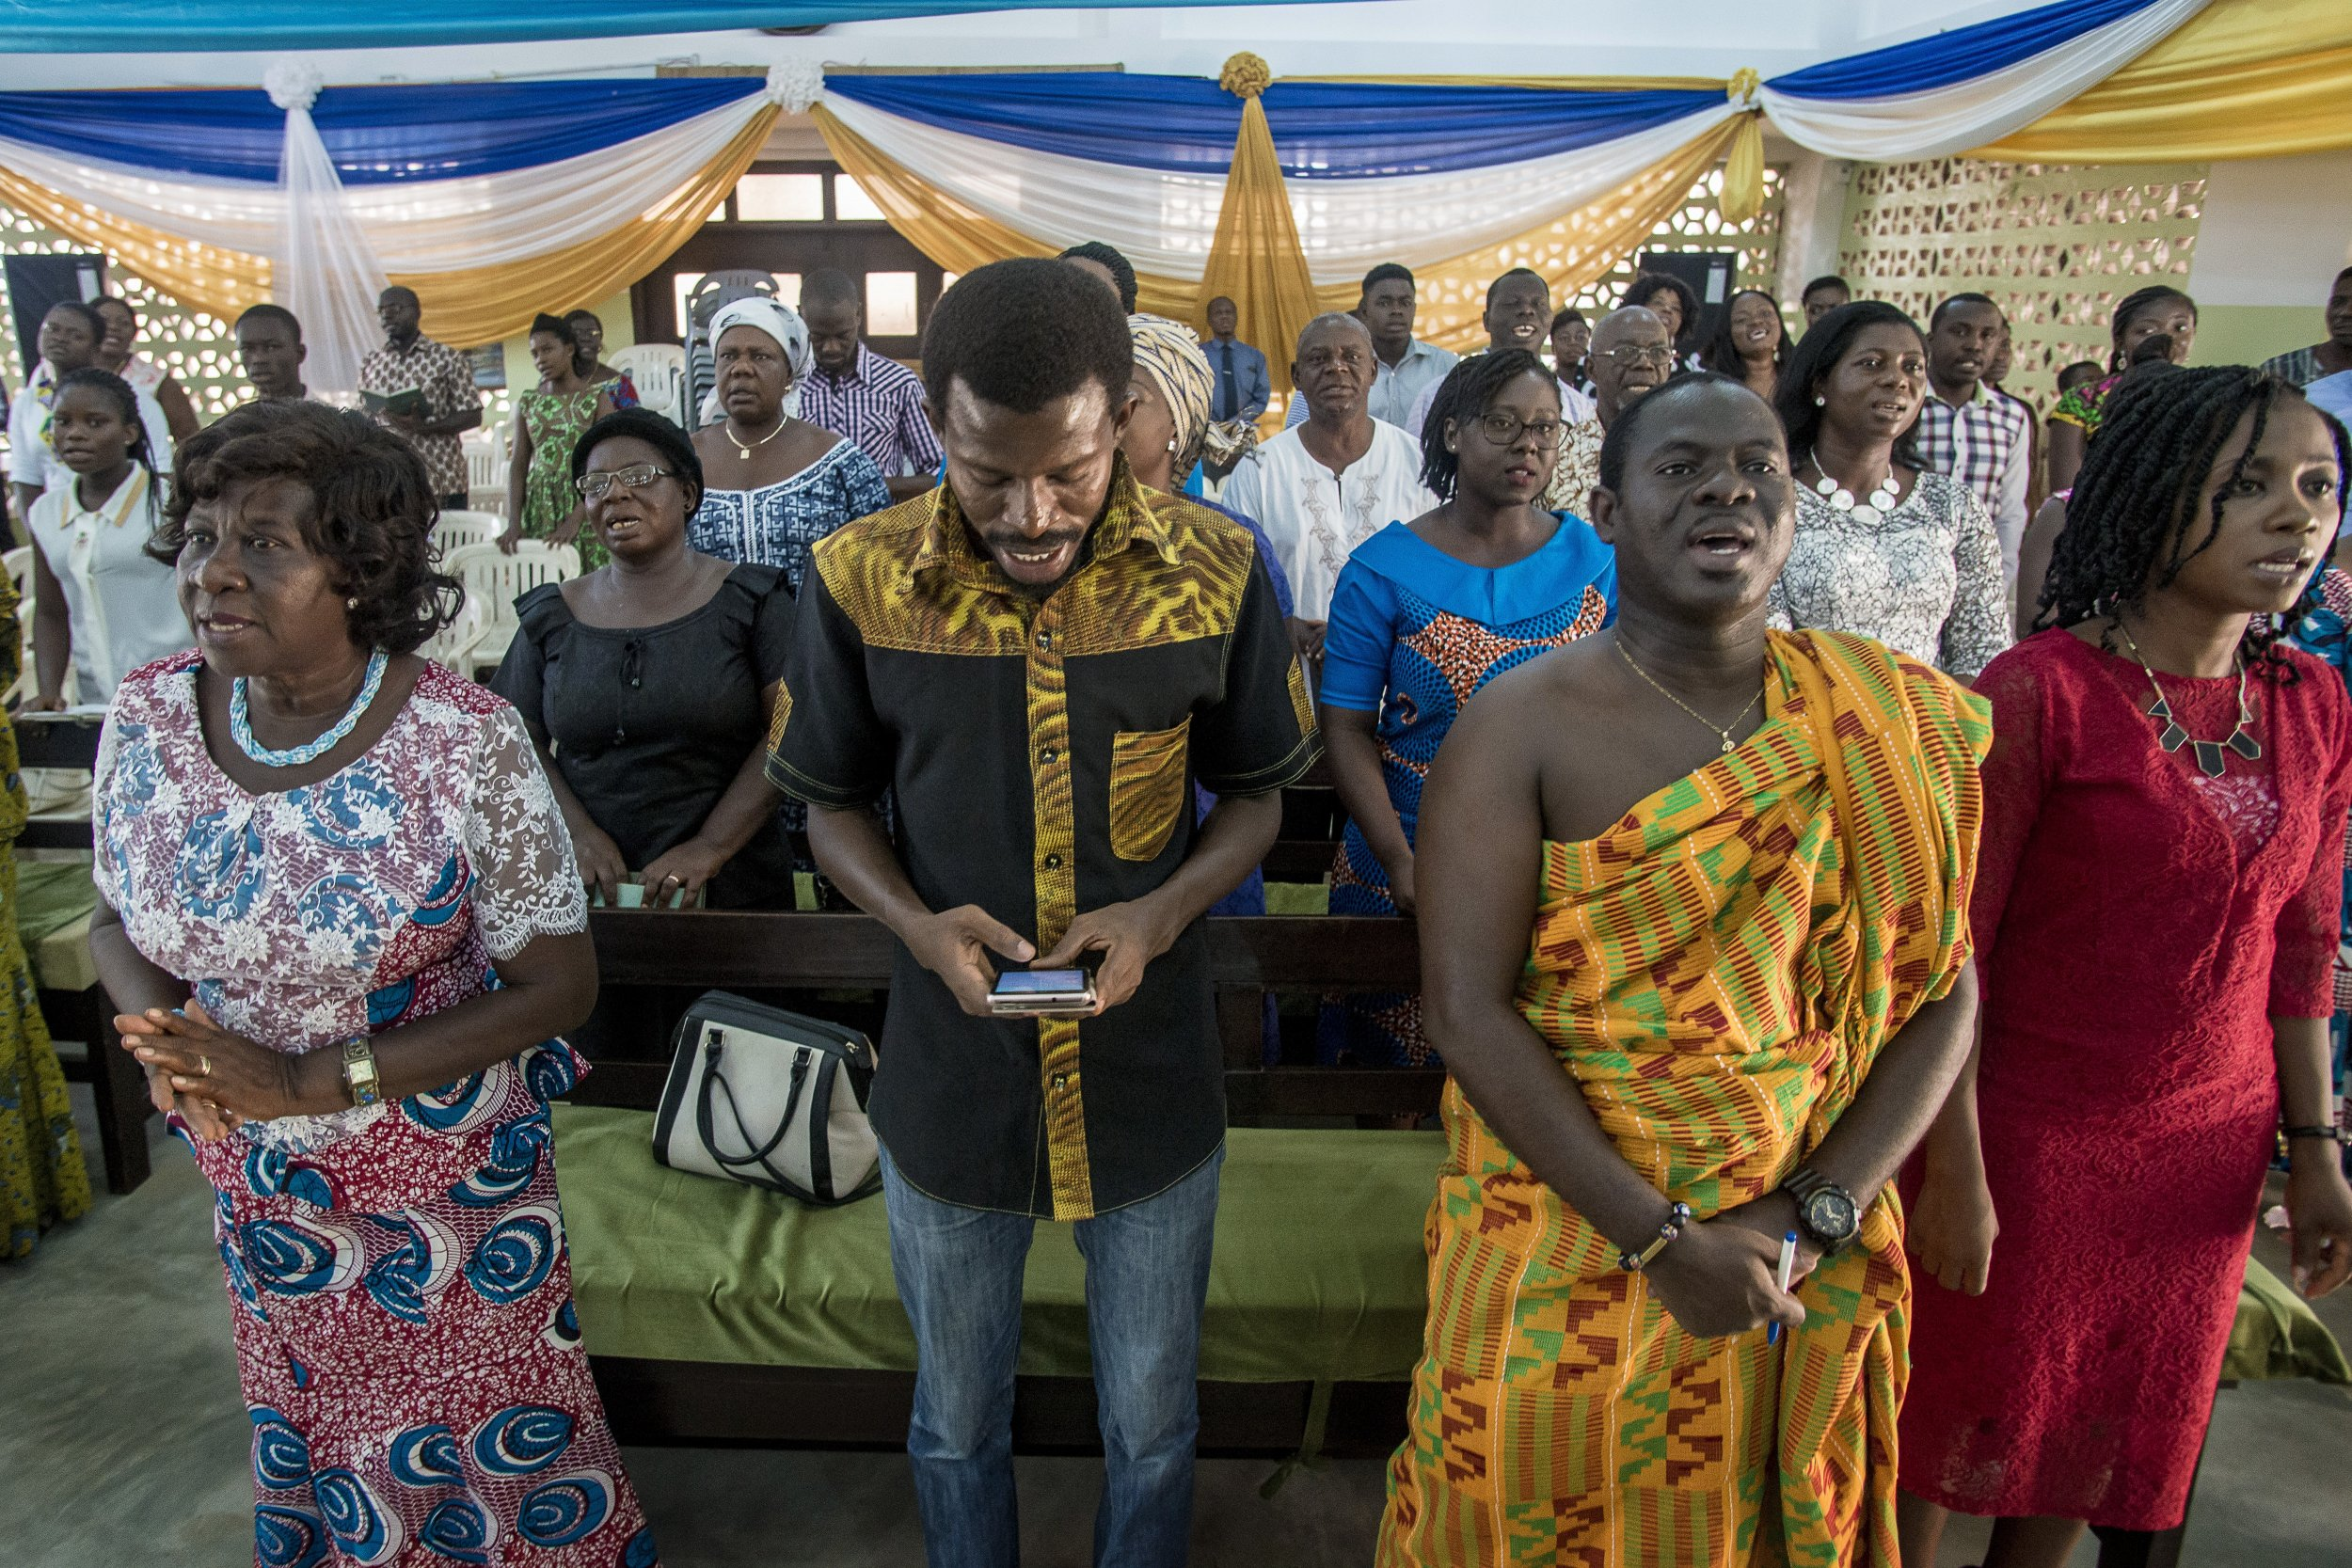 Ghanaian App Offers Salvation Through Your Smartphone